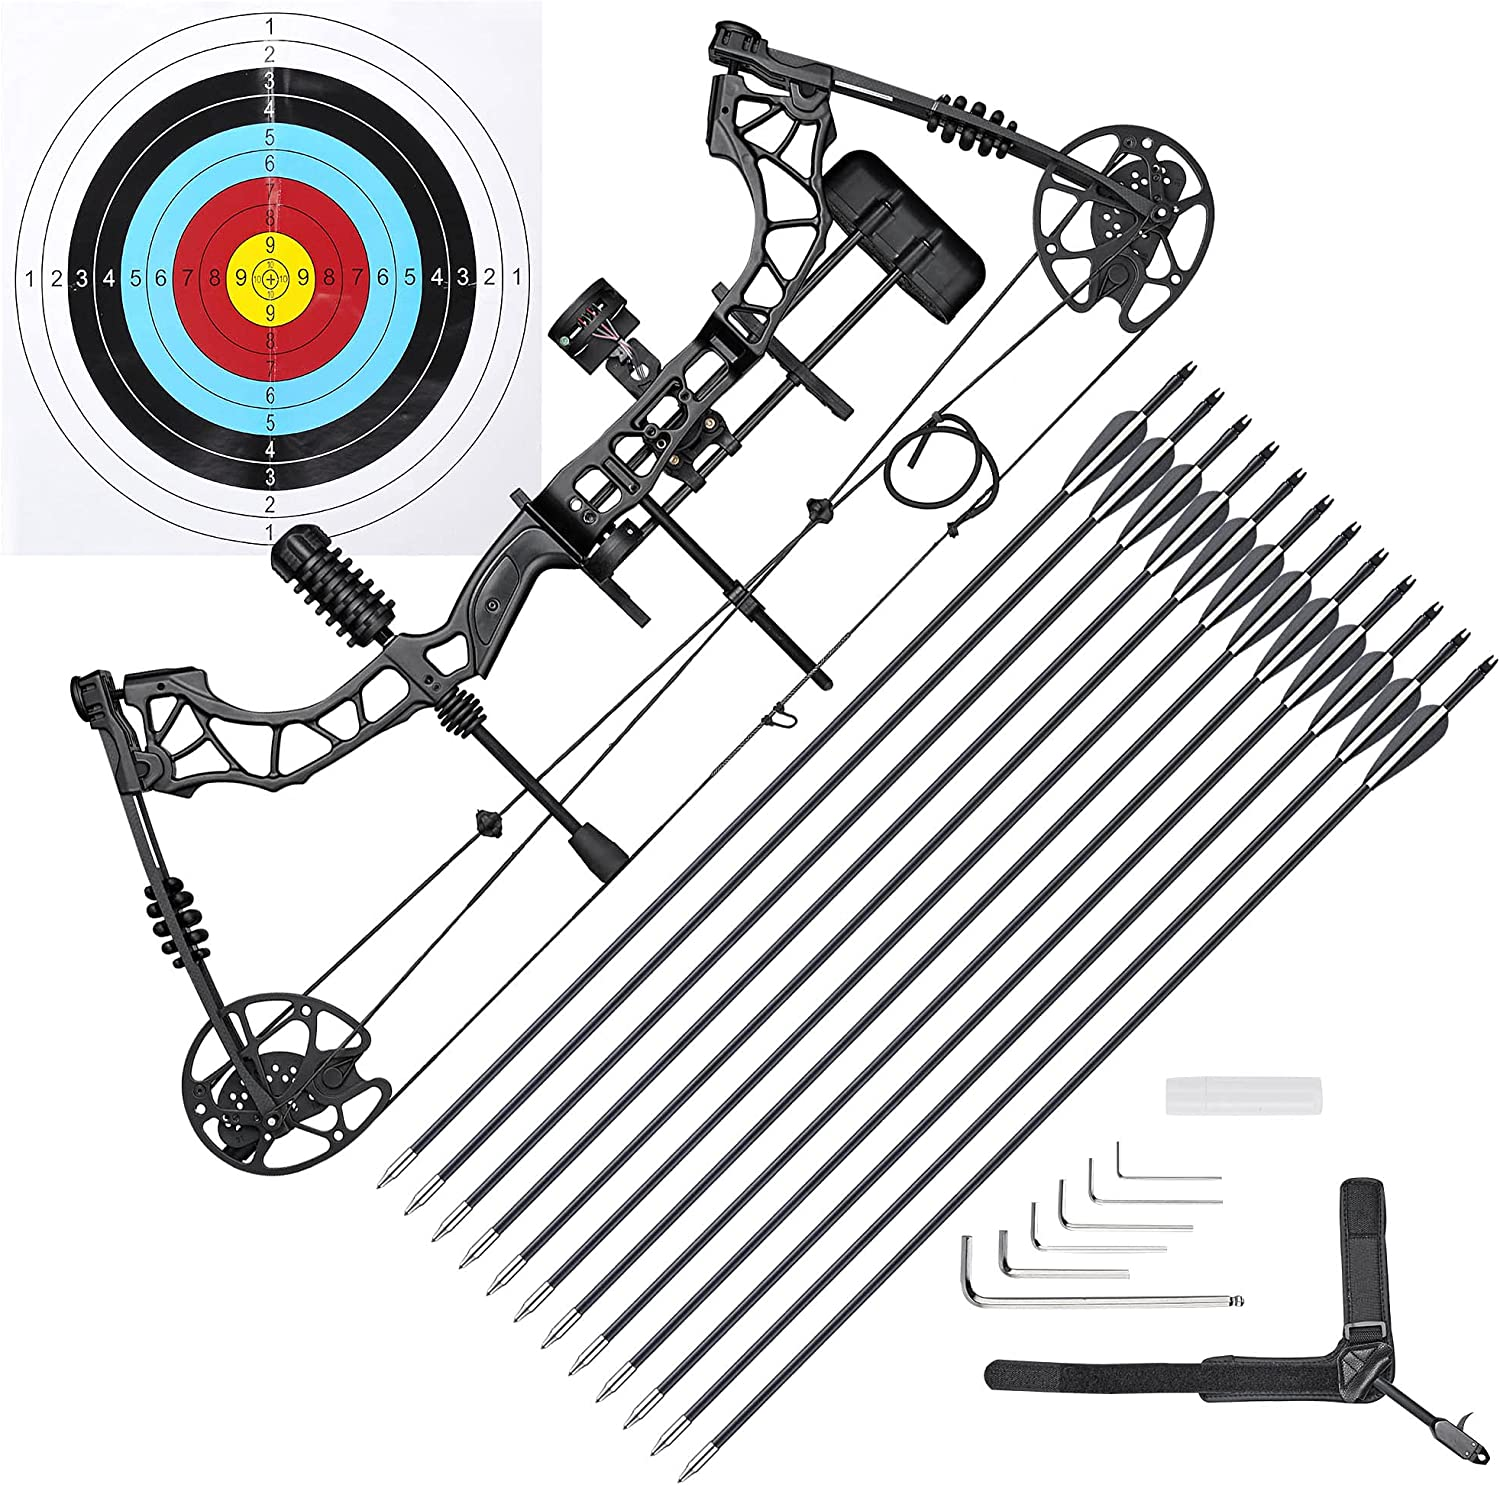 AW 70 Lbs Pro Compound Bow All items in the store Bargain sale Practice Kit Target Hand Right Huntin